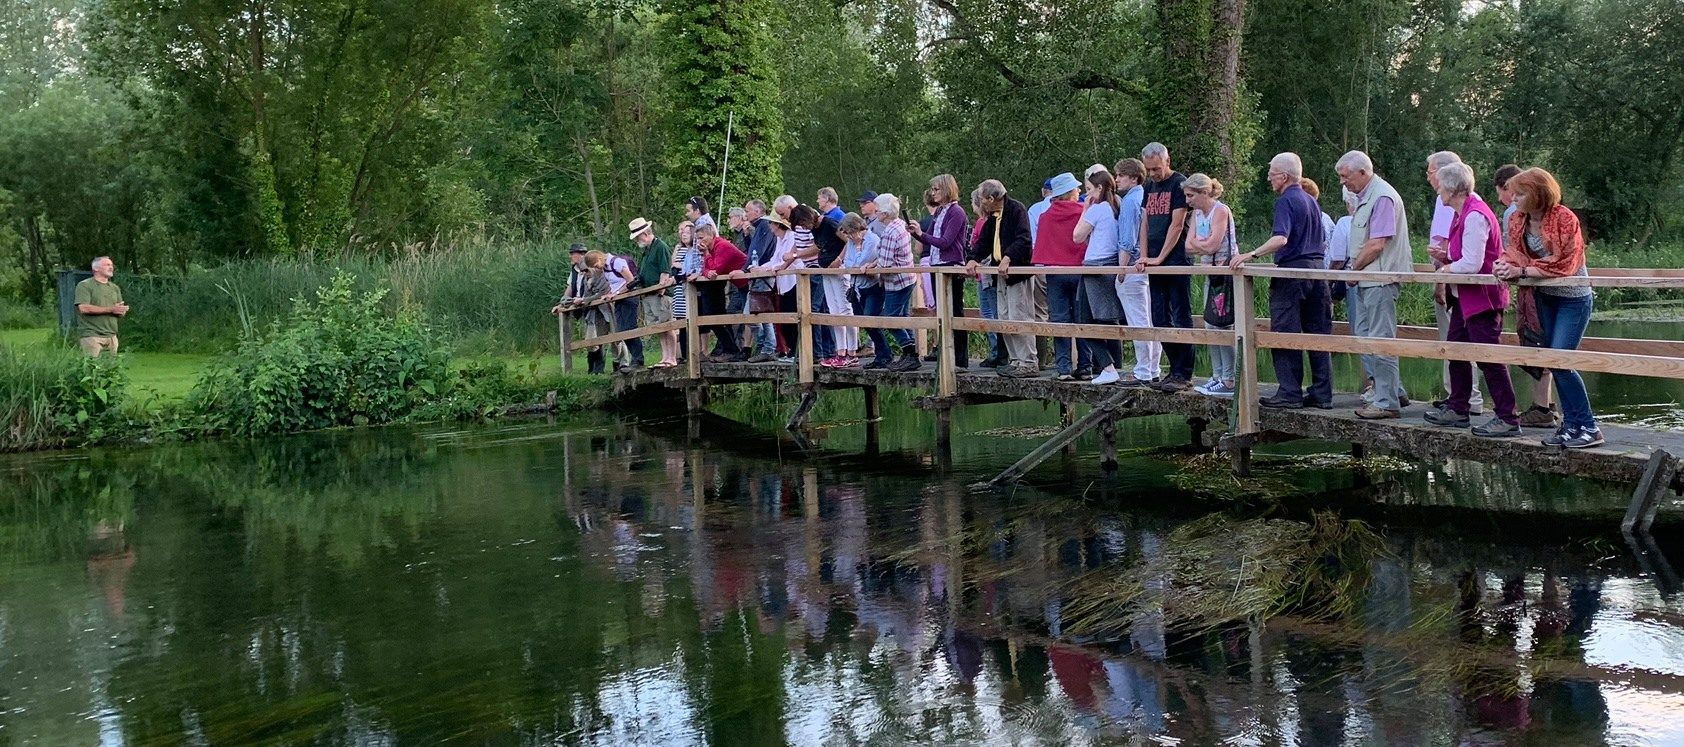 Rob Starr giving a nature talk beside the River Kennet